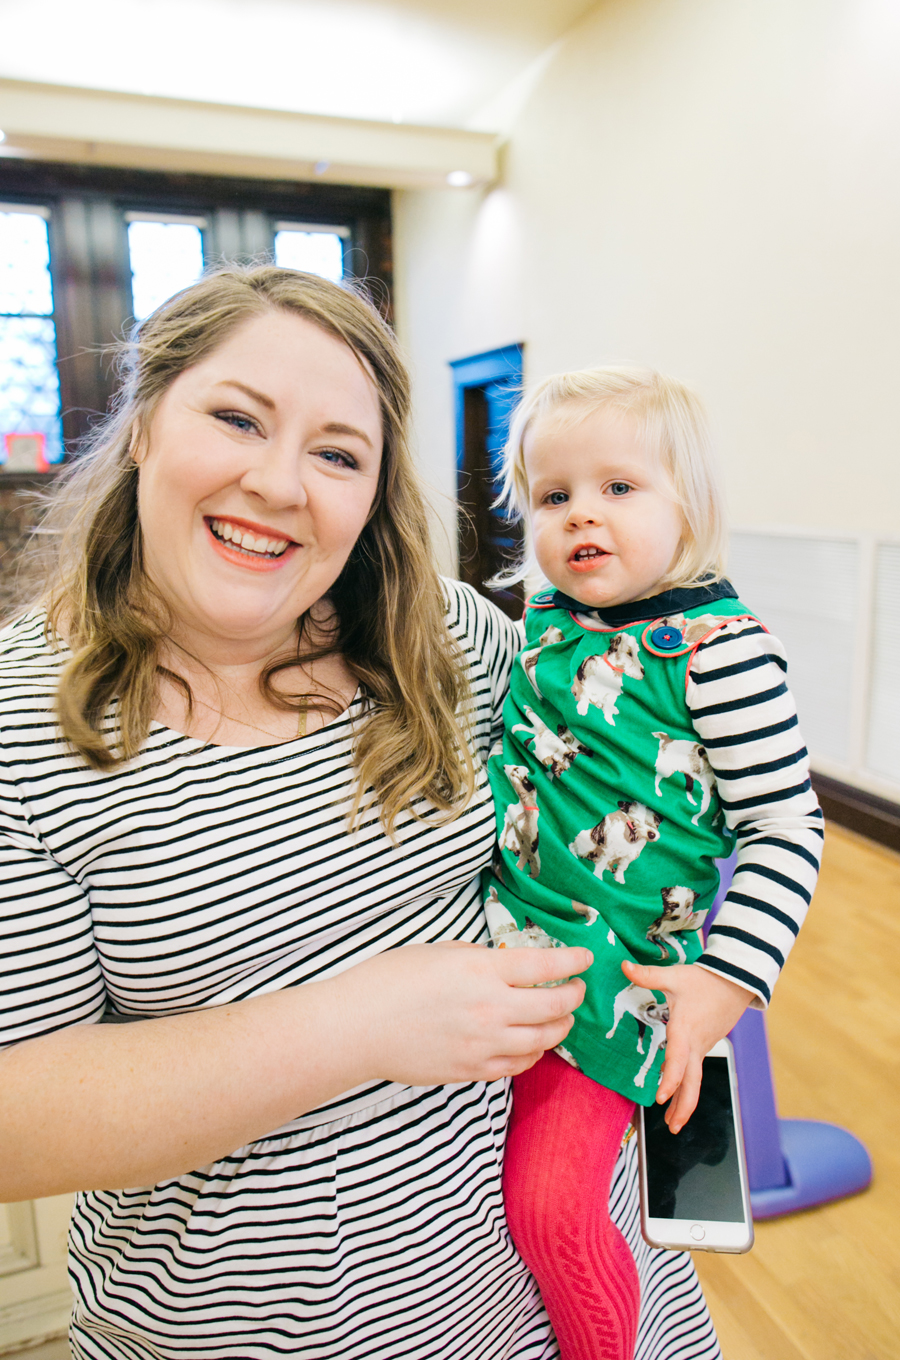 028-bellingham-family-party-photographer-vada-turns-two-fairhaven-library-katheryn-moran-photography.jpg